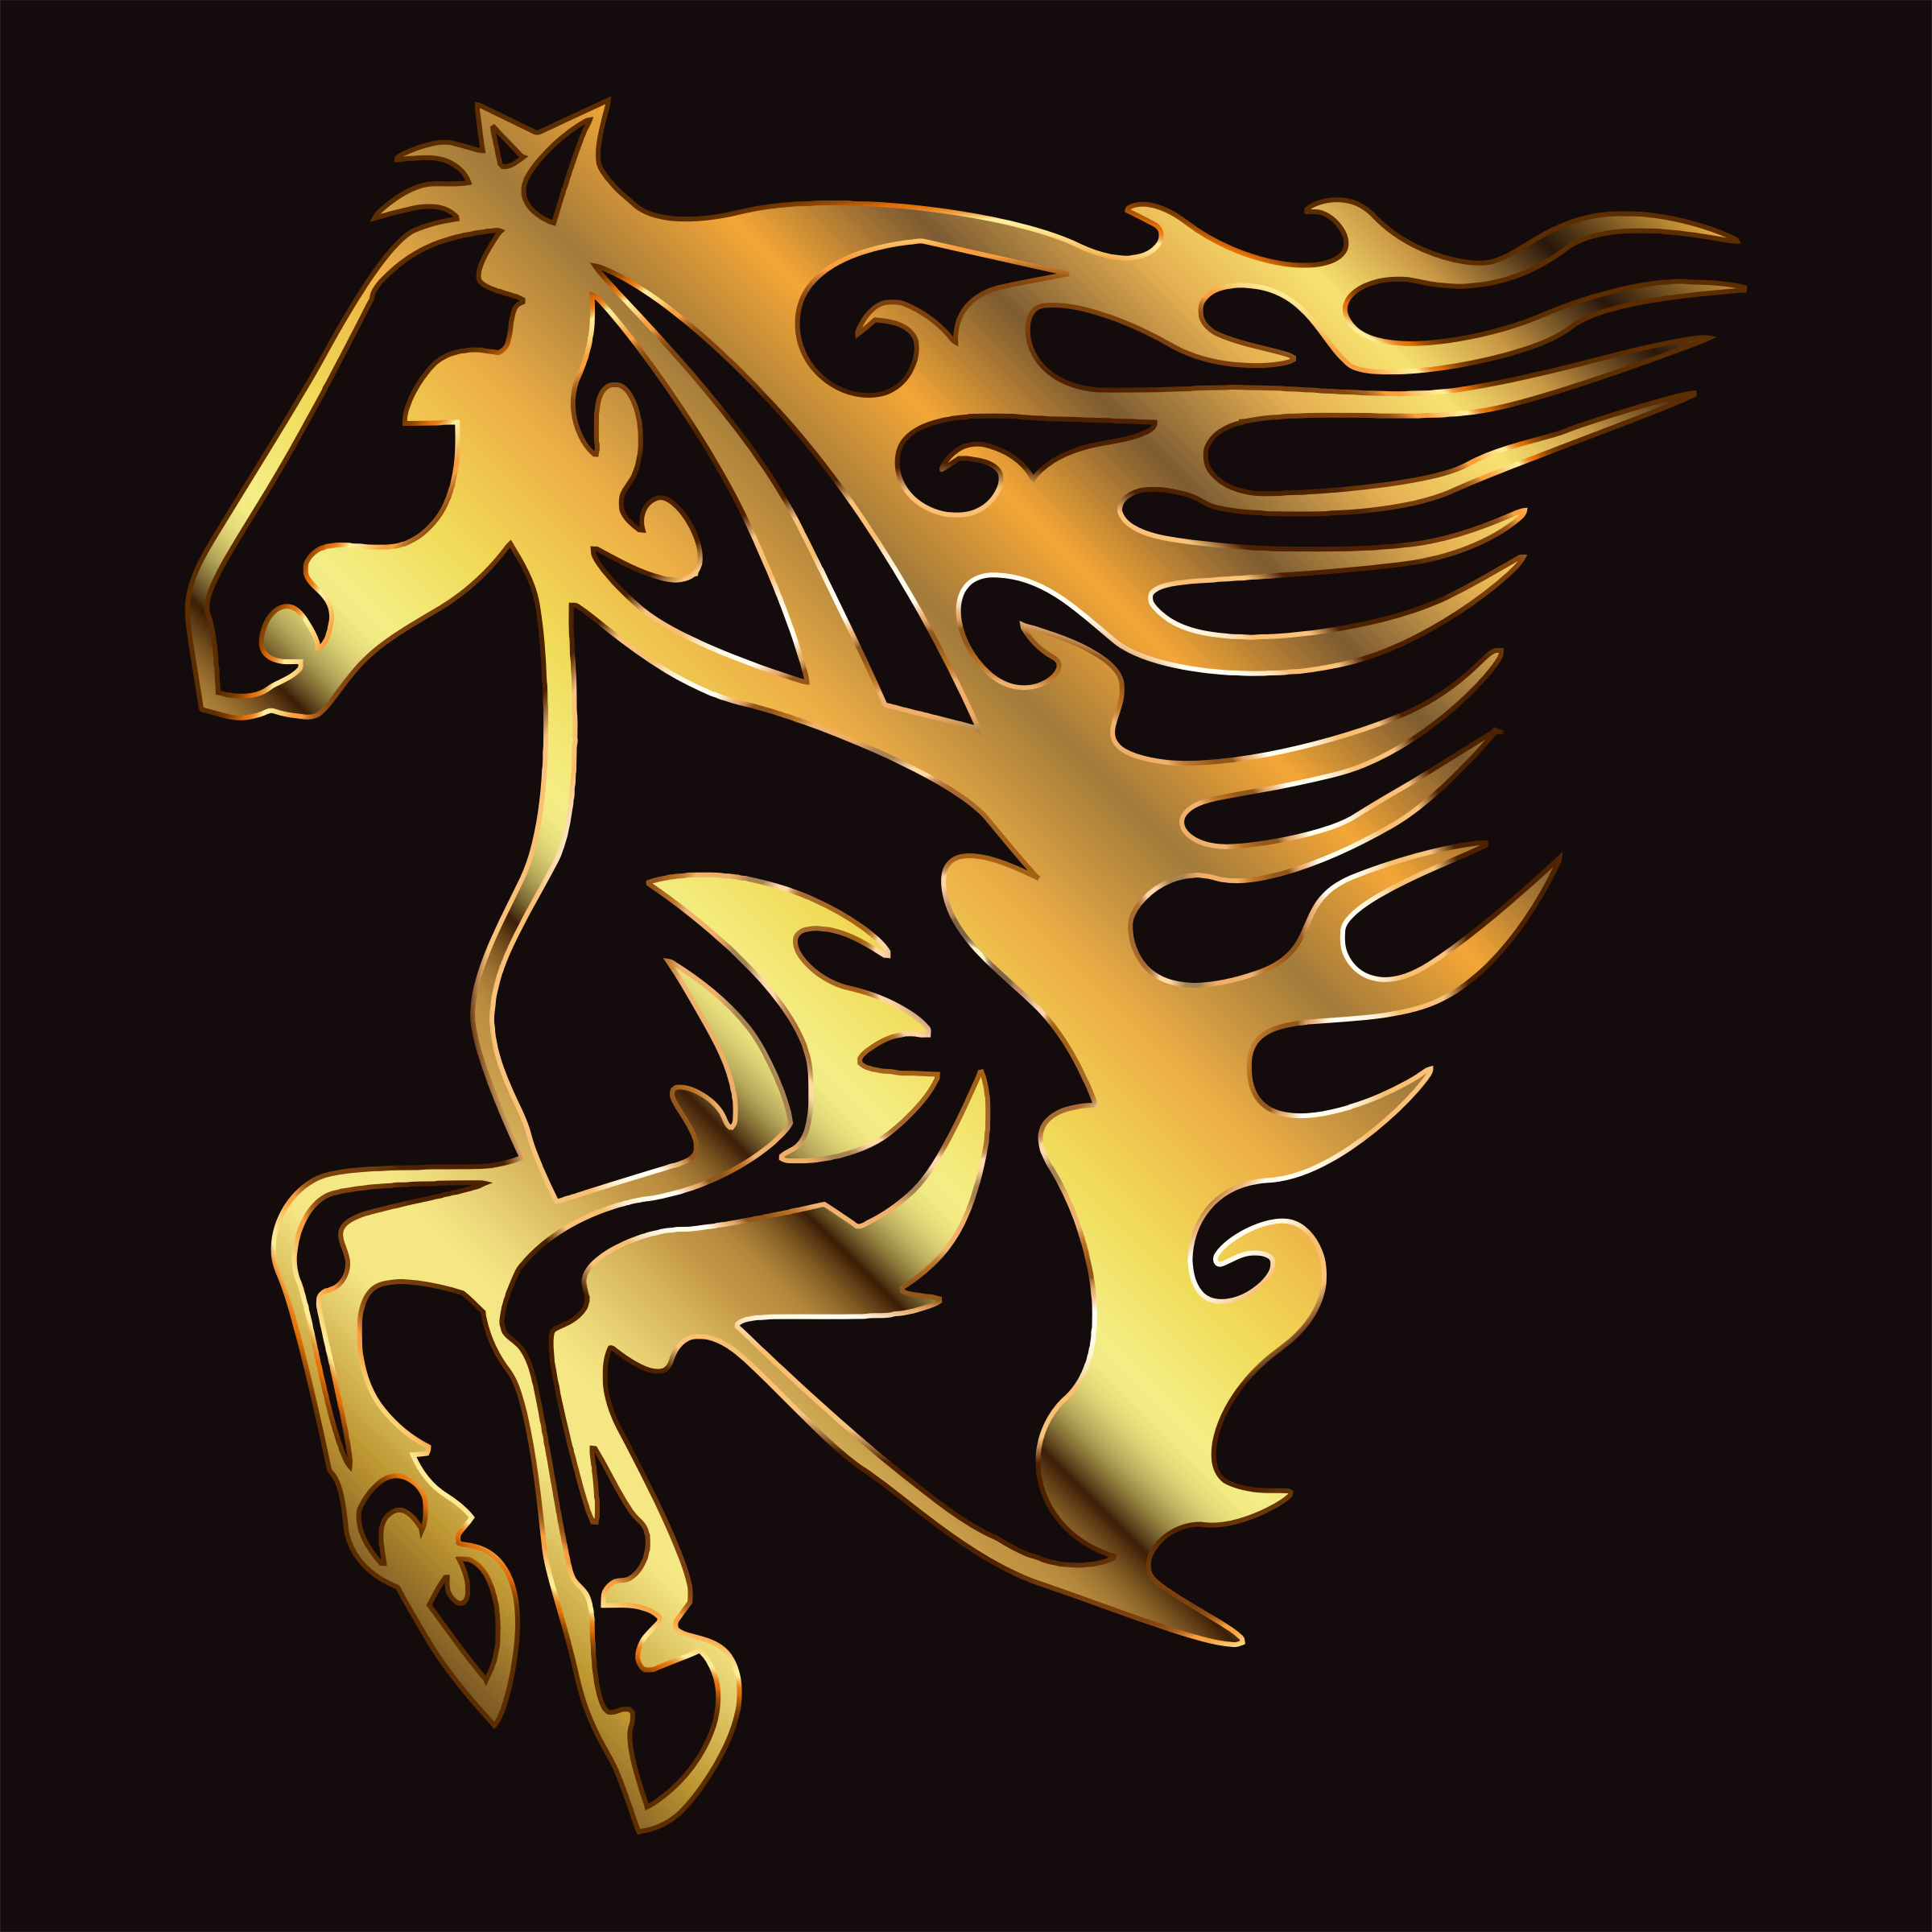 Golden Flame Horse 8 by GDJ